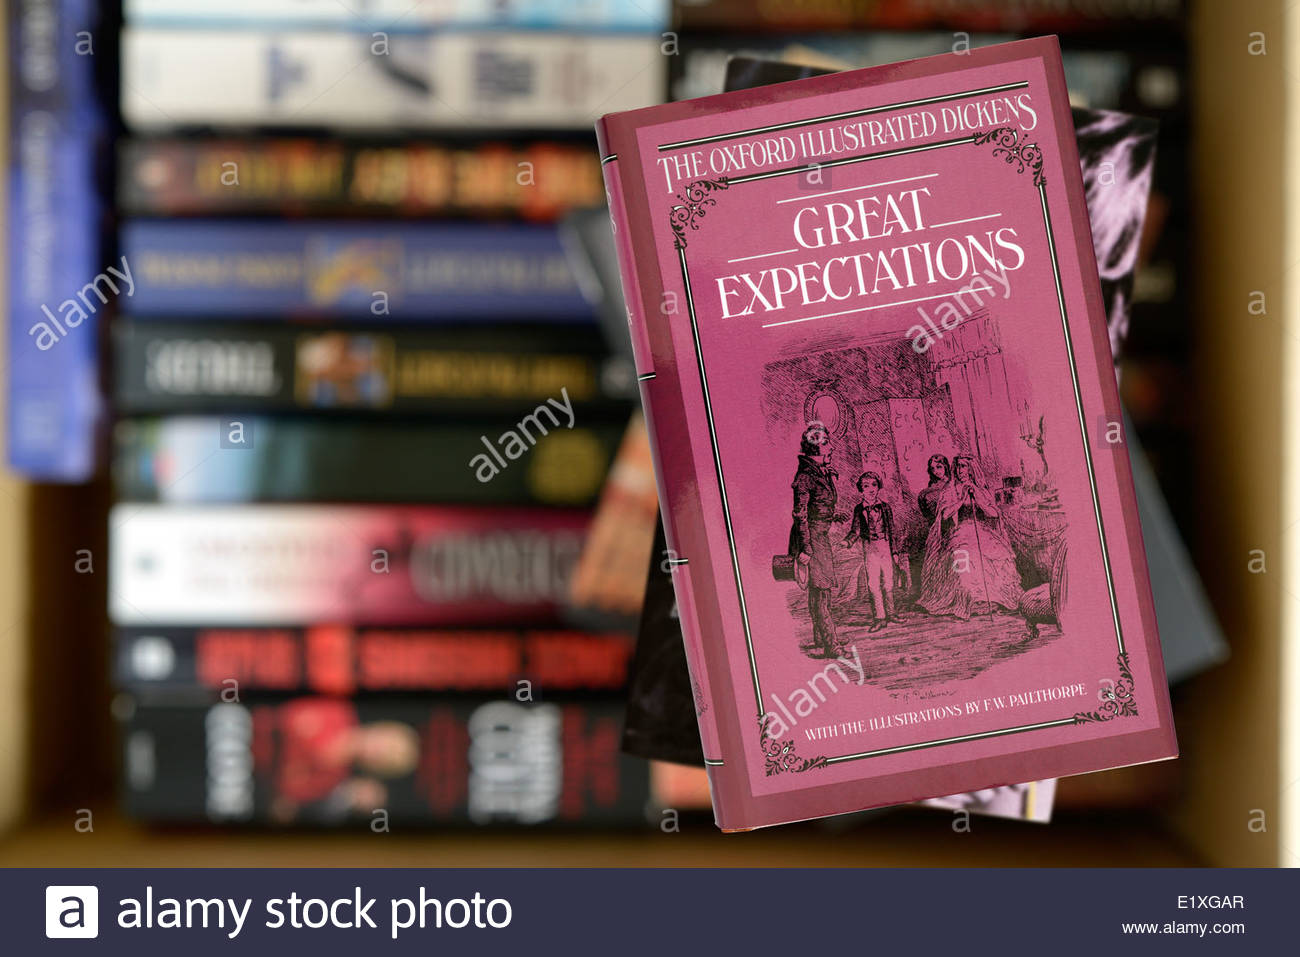 Charles Dickens novel, Great Expectations, hardback title stacked used books, England - Stock Image